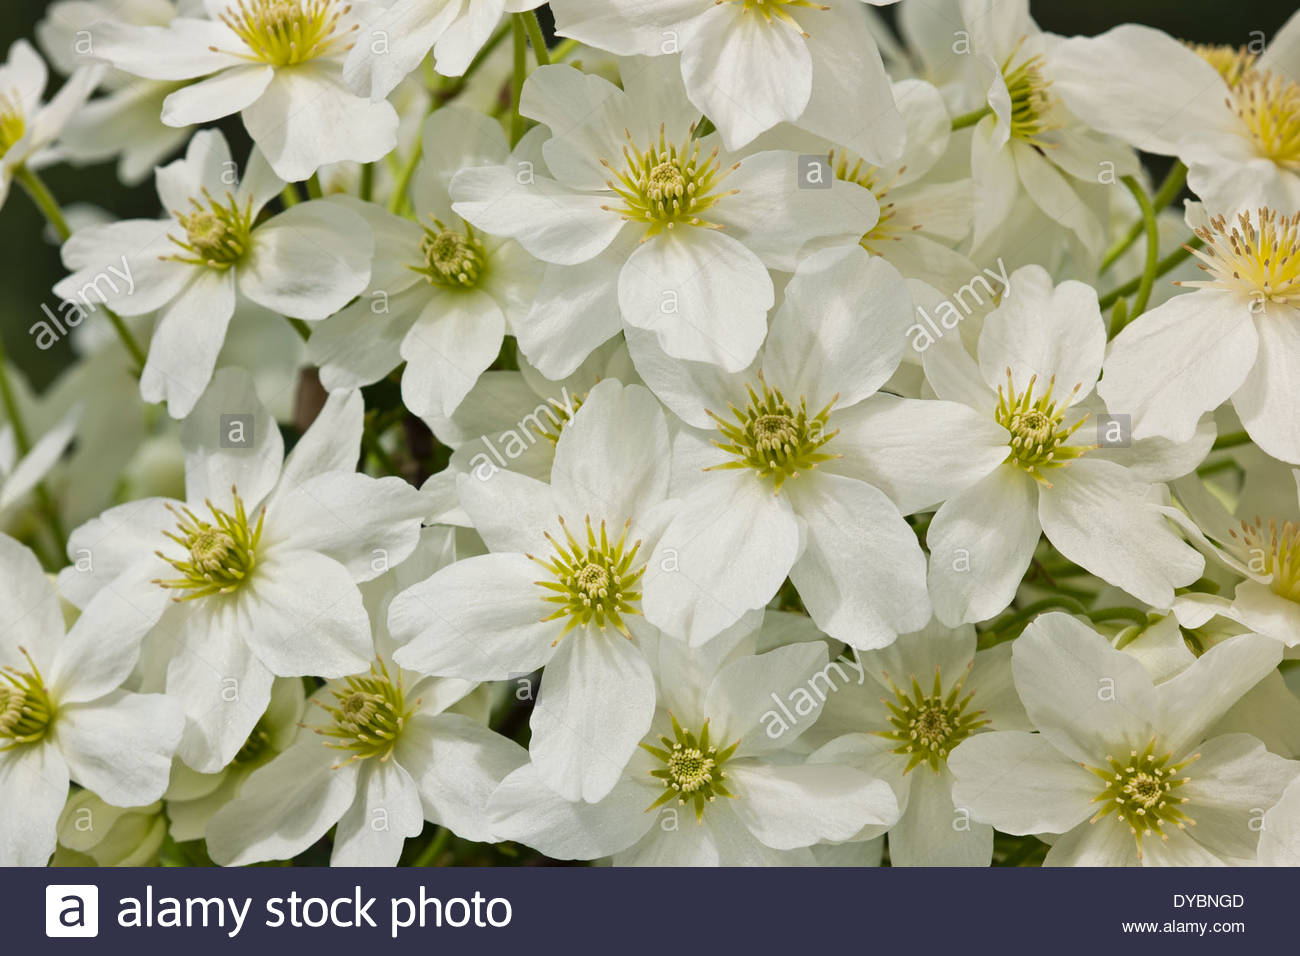 Clematis x cartmanii avalanche spring flower evergreen scented scent clematis x cartmanii avalanche spring flower evergreen scented scent perfume climbing vine cream white april garden plant blooms mightylinksfo